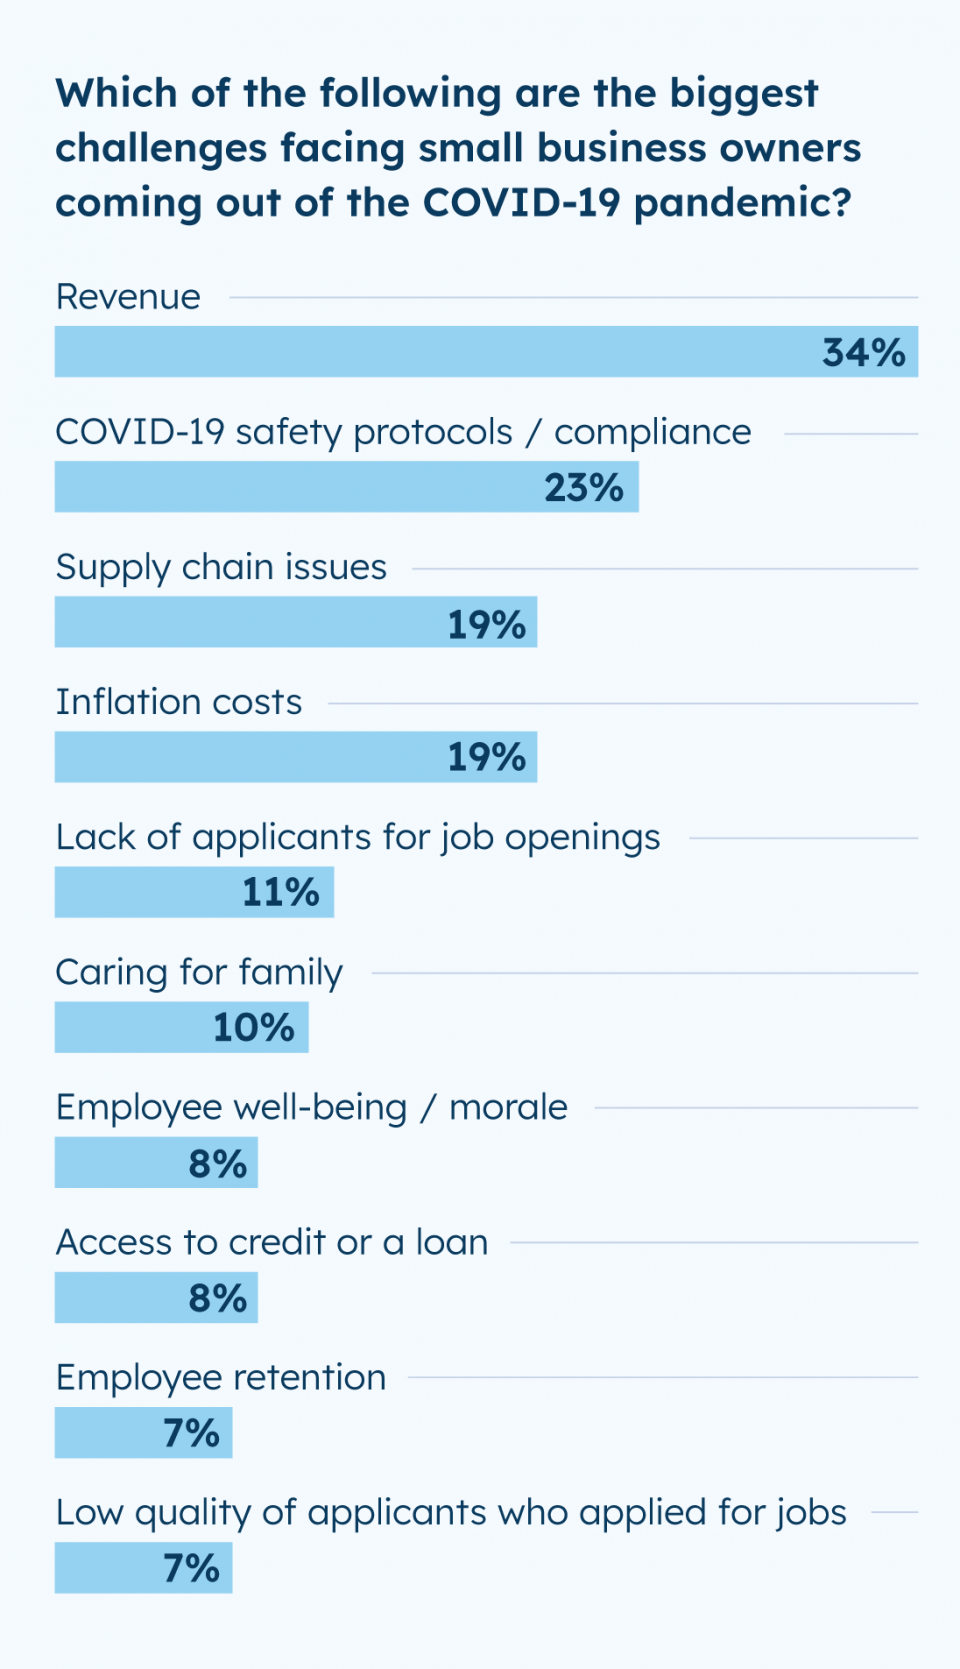 POLL: The biggest challenges facing small business owners coming out of the COVID-19 pandemic.